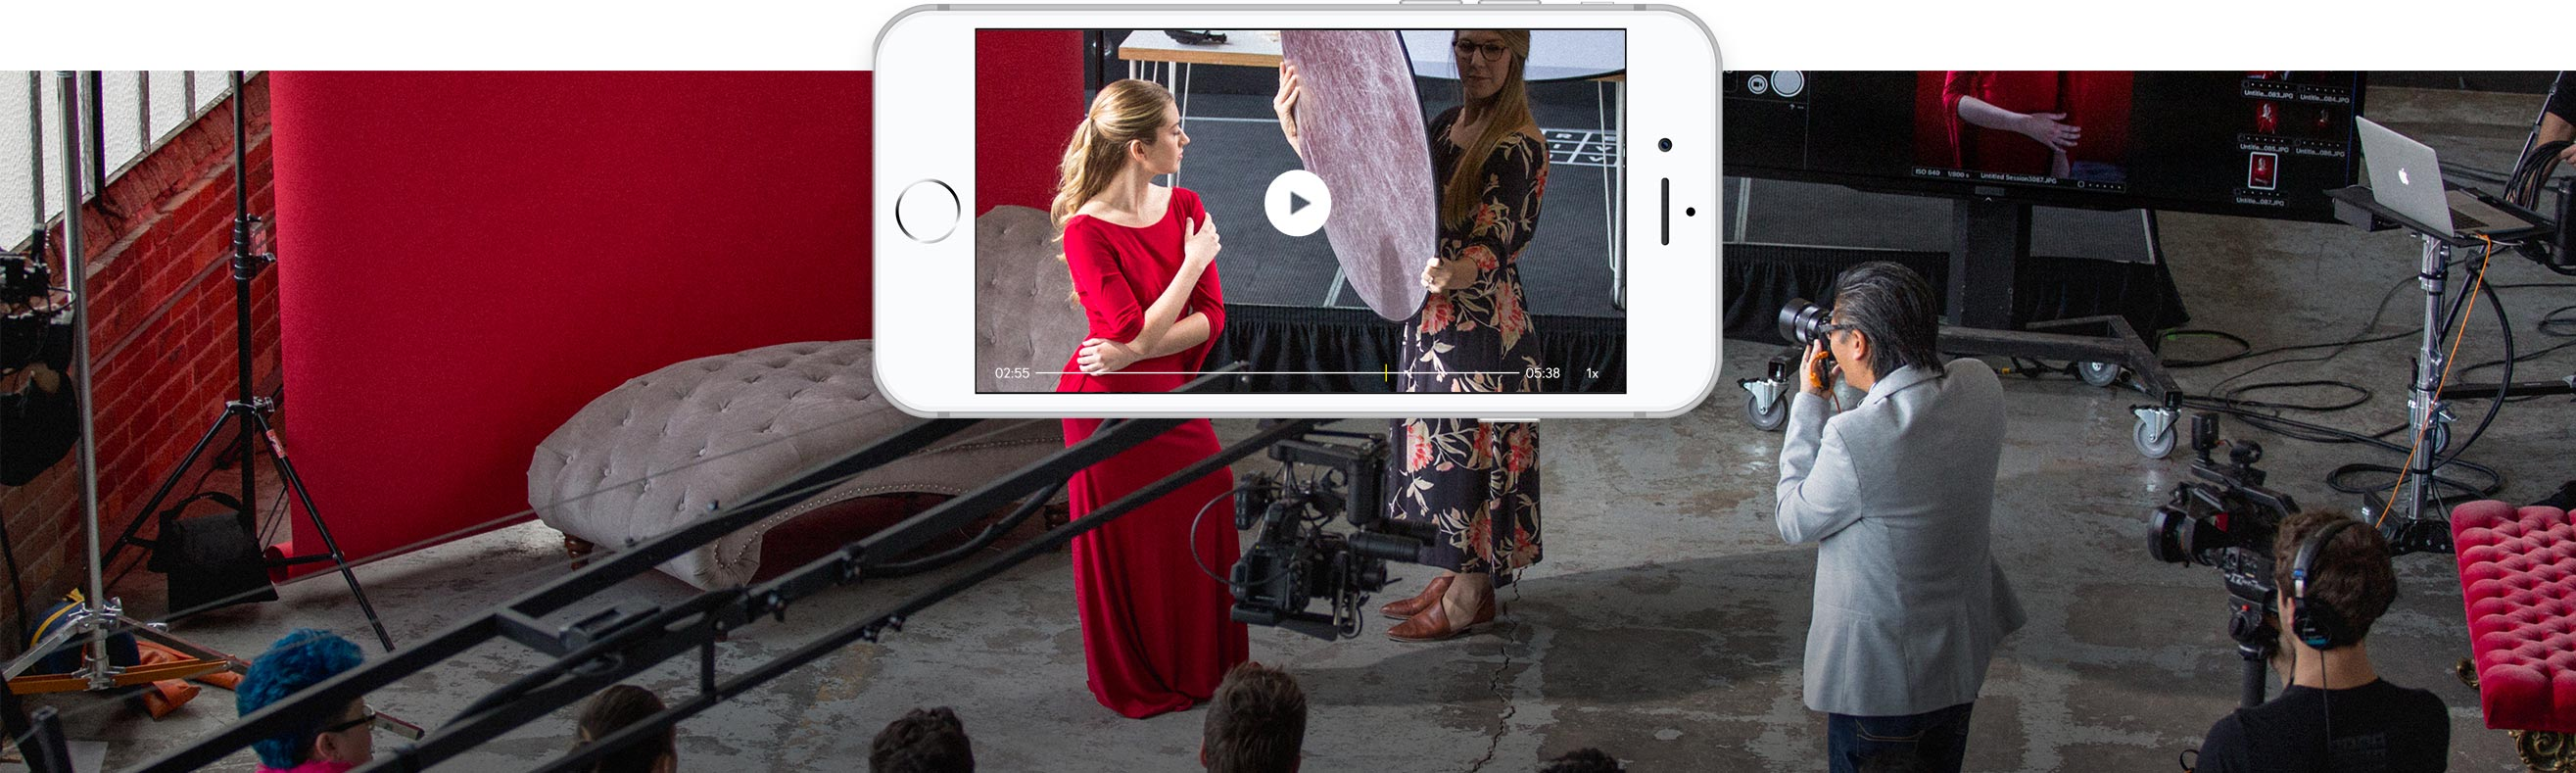 CreativeLive apps: iPhone, iPad and Apple TV